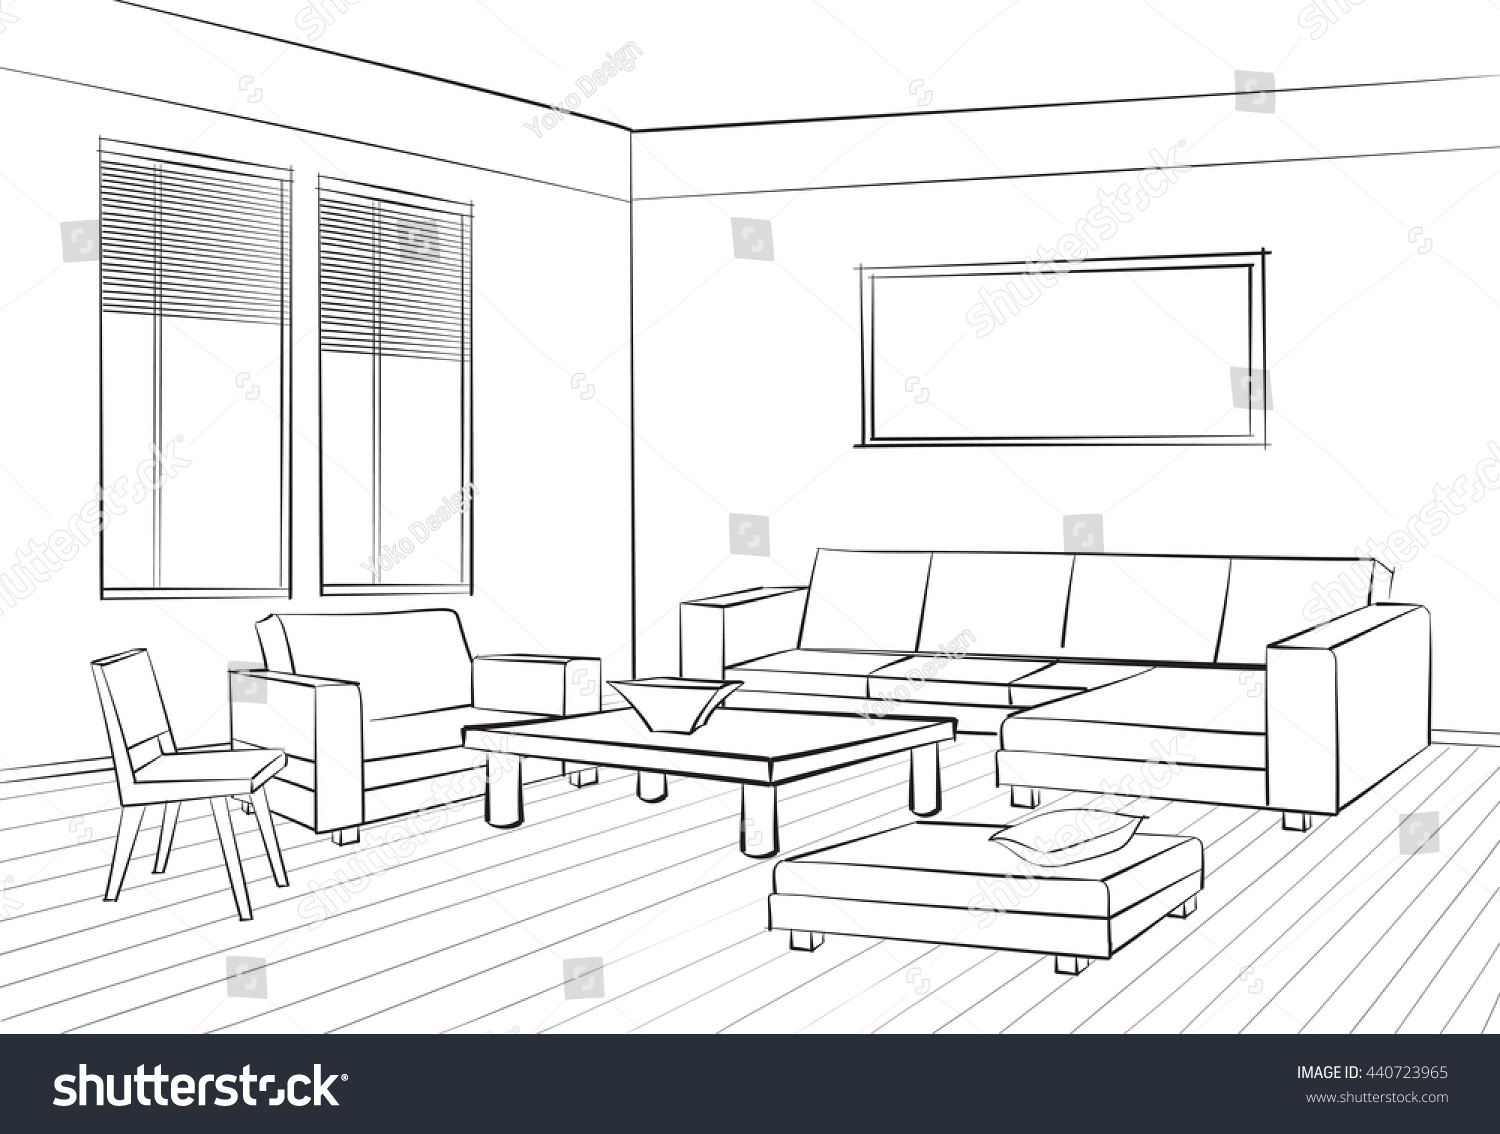 Home interior furniture sofa armchair table stock vector for Drawing room